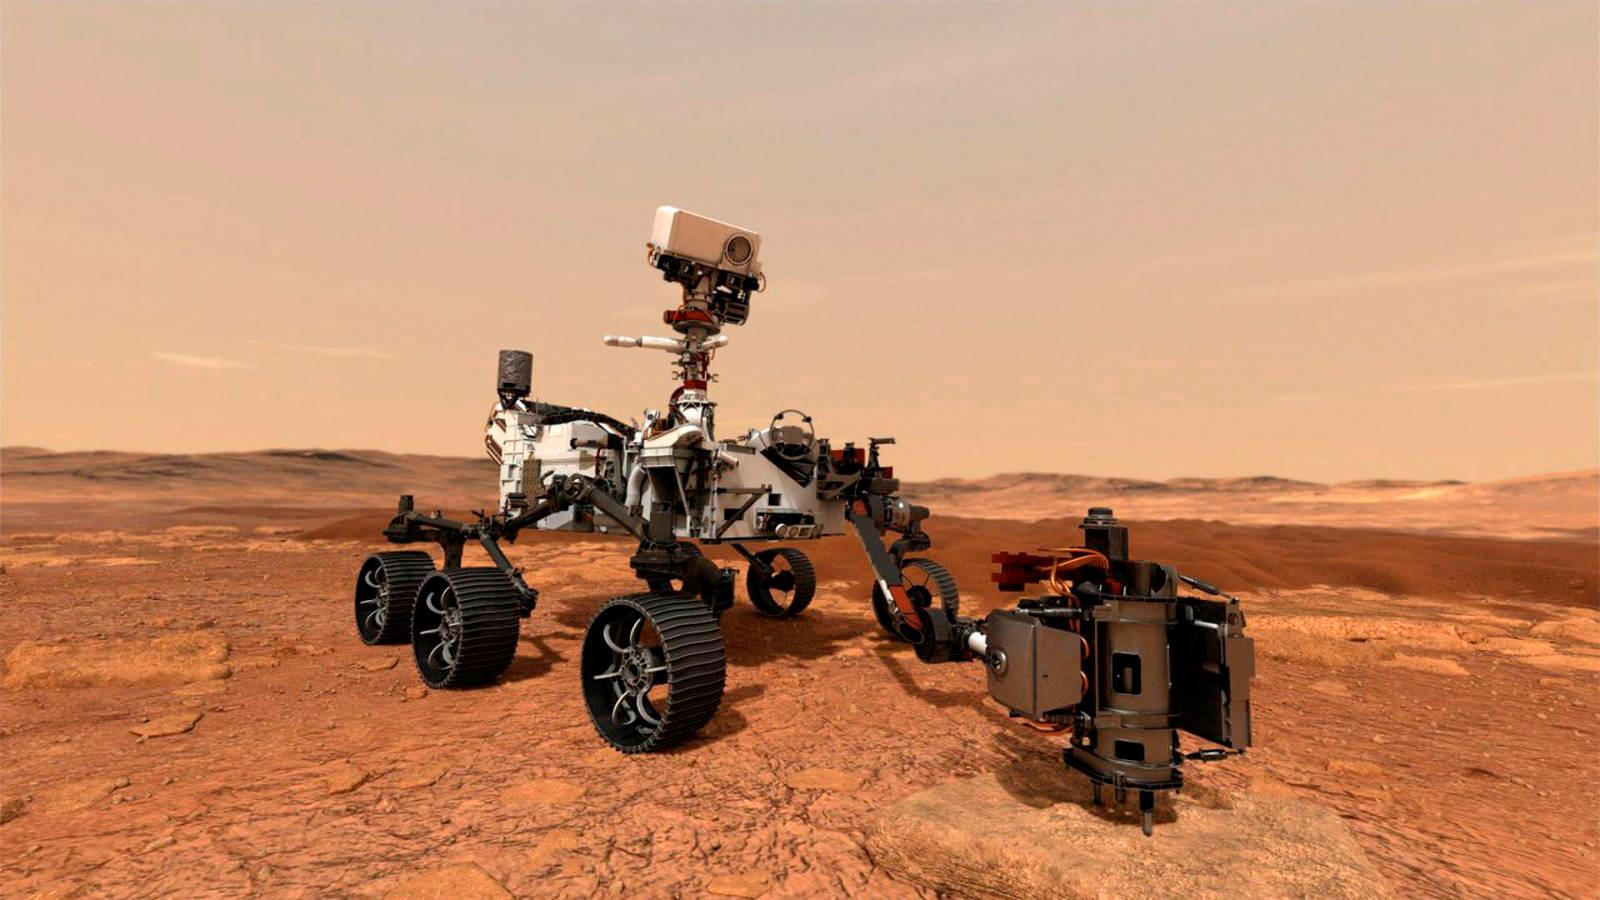 The diligent rover travels its first meter to the surface of Mars